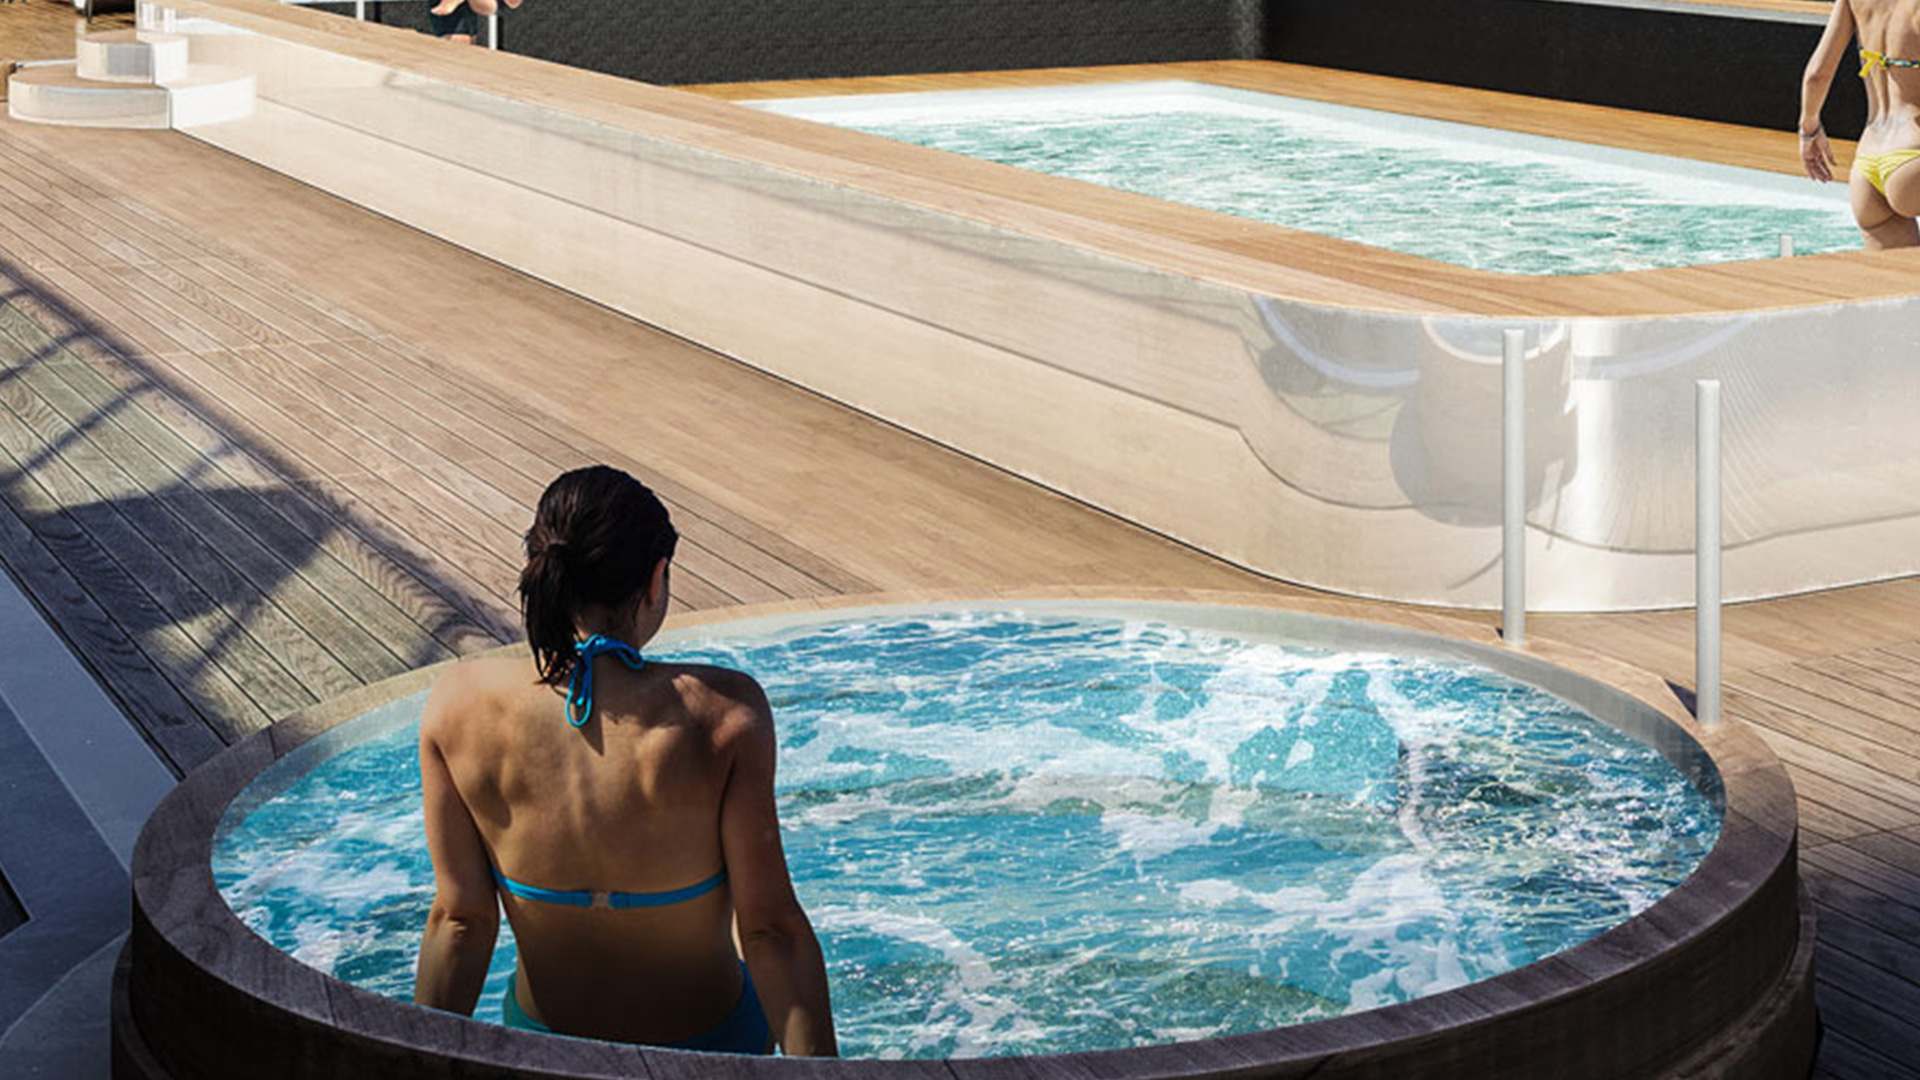 Retractable spa tub